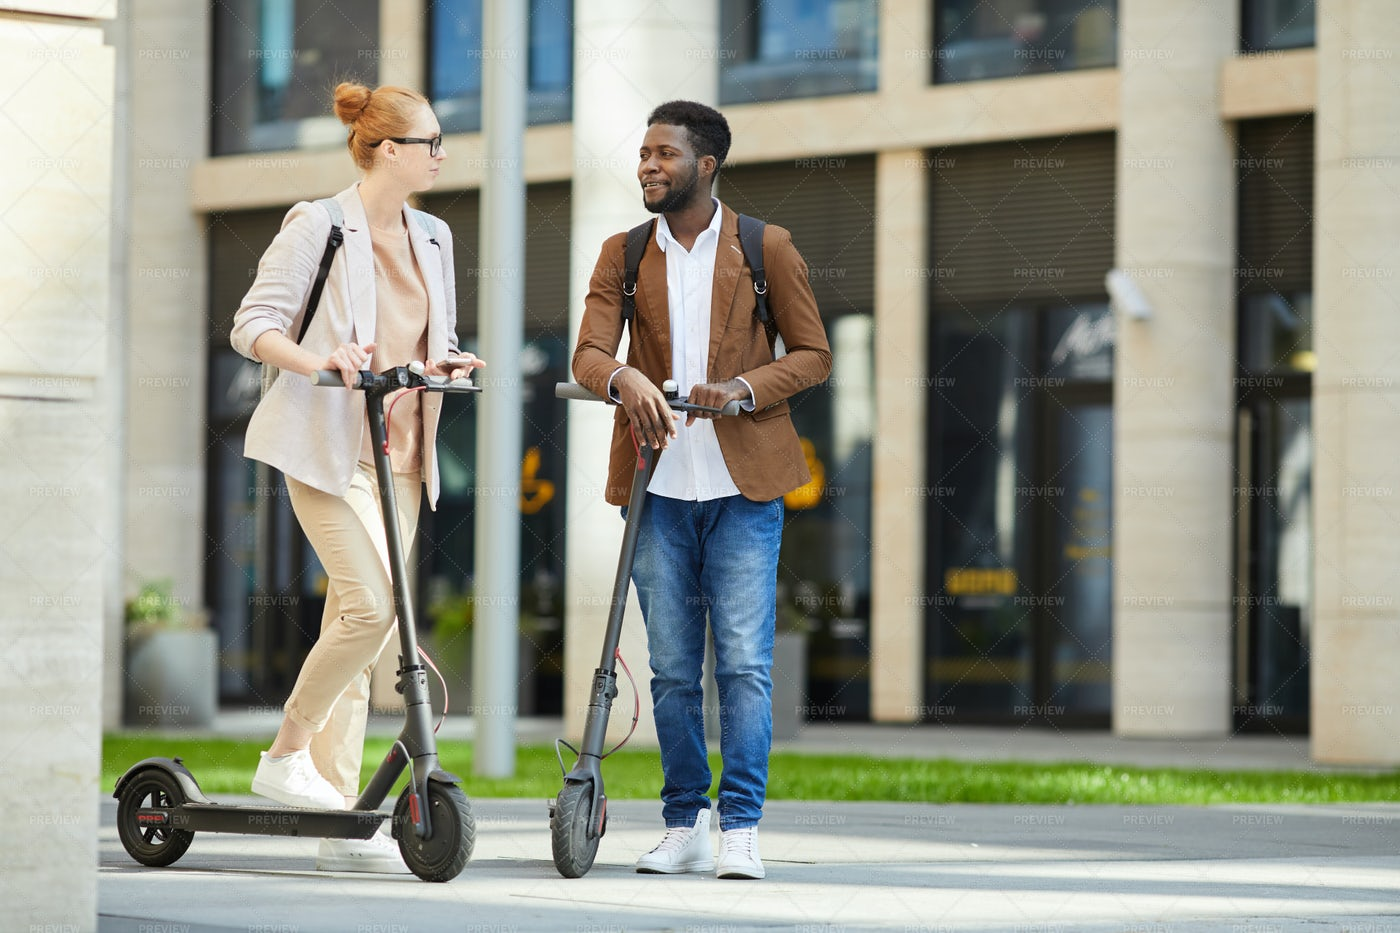 Couple Riding Electric Scooters In...: Stock Photos